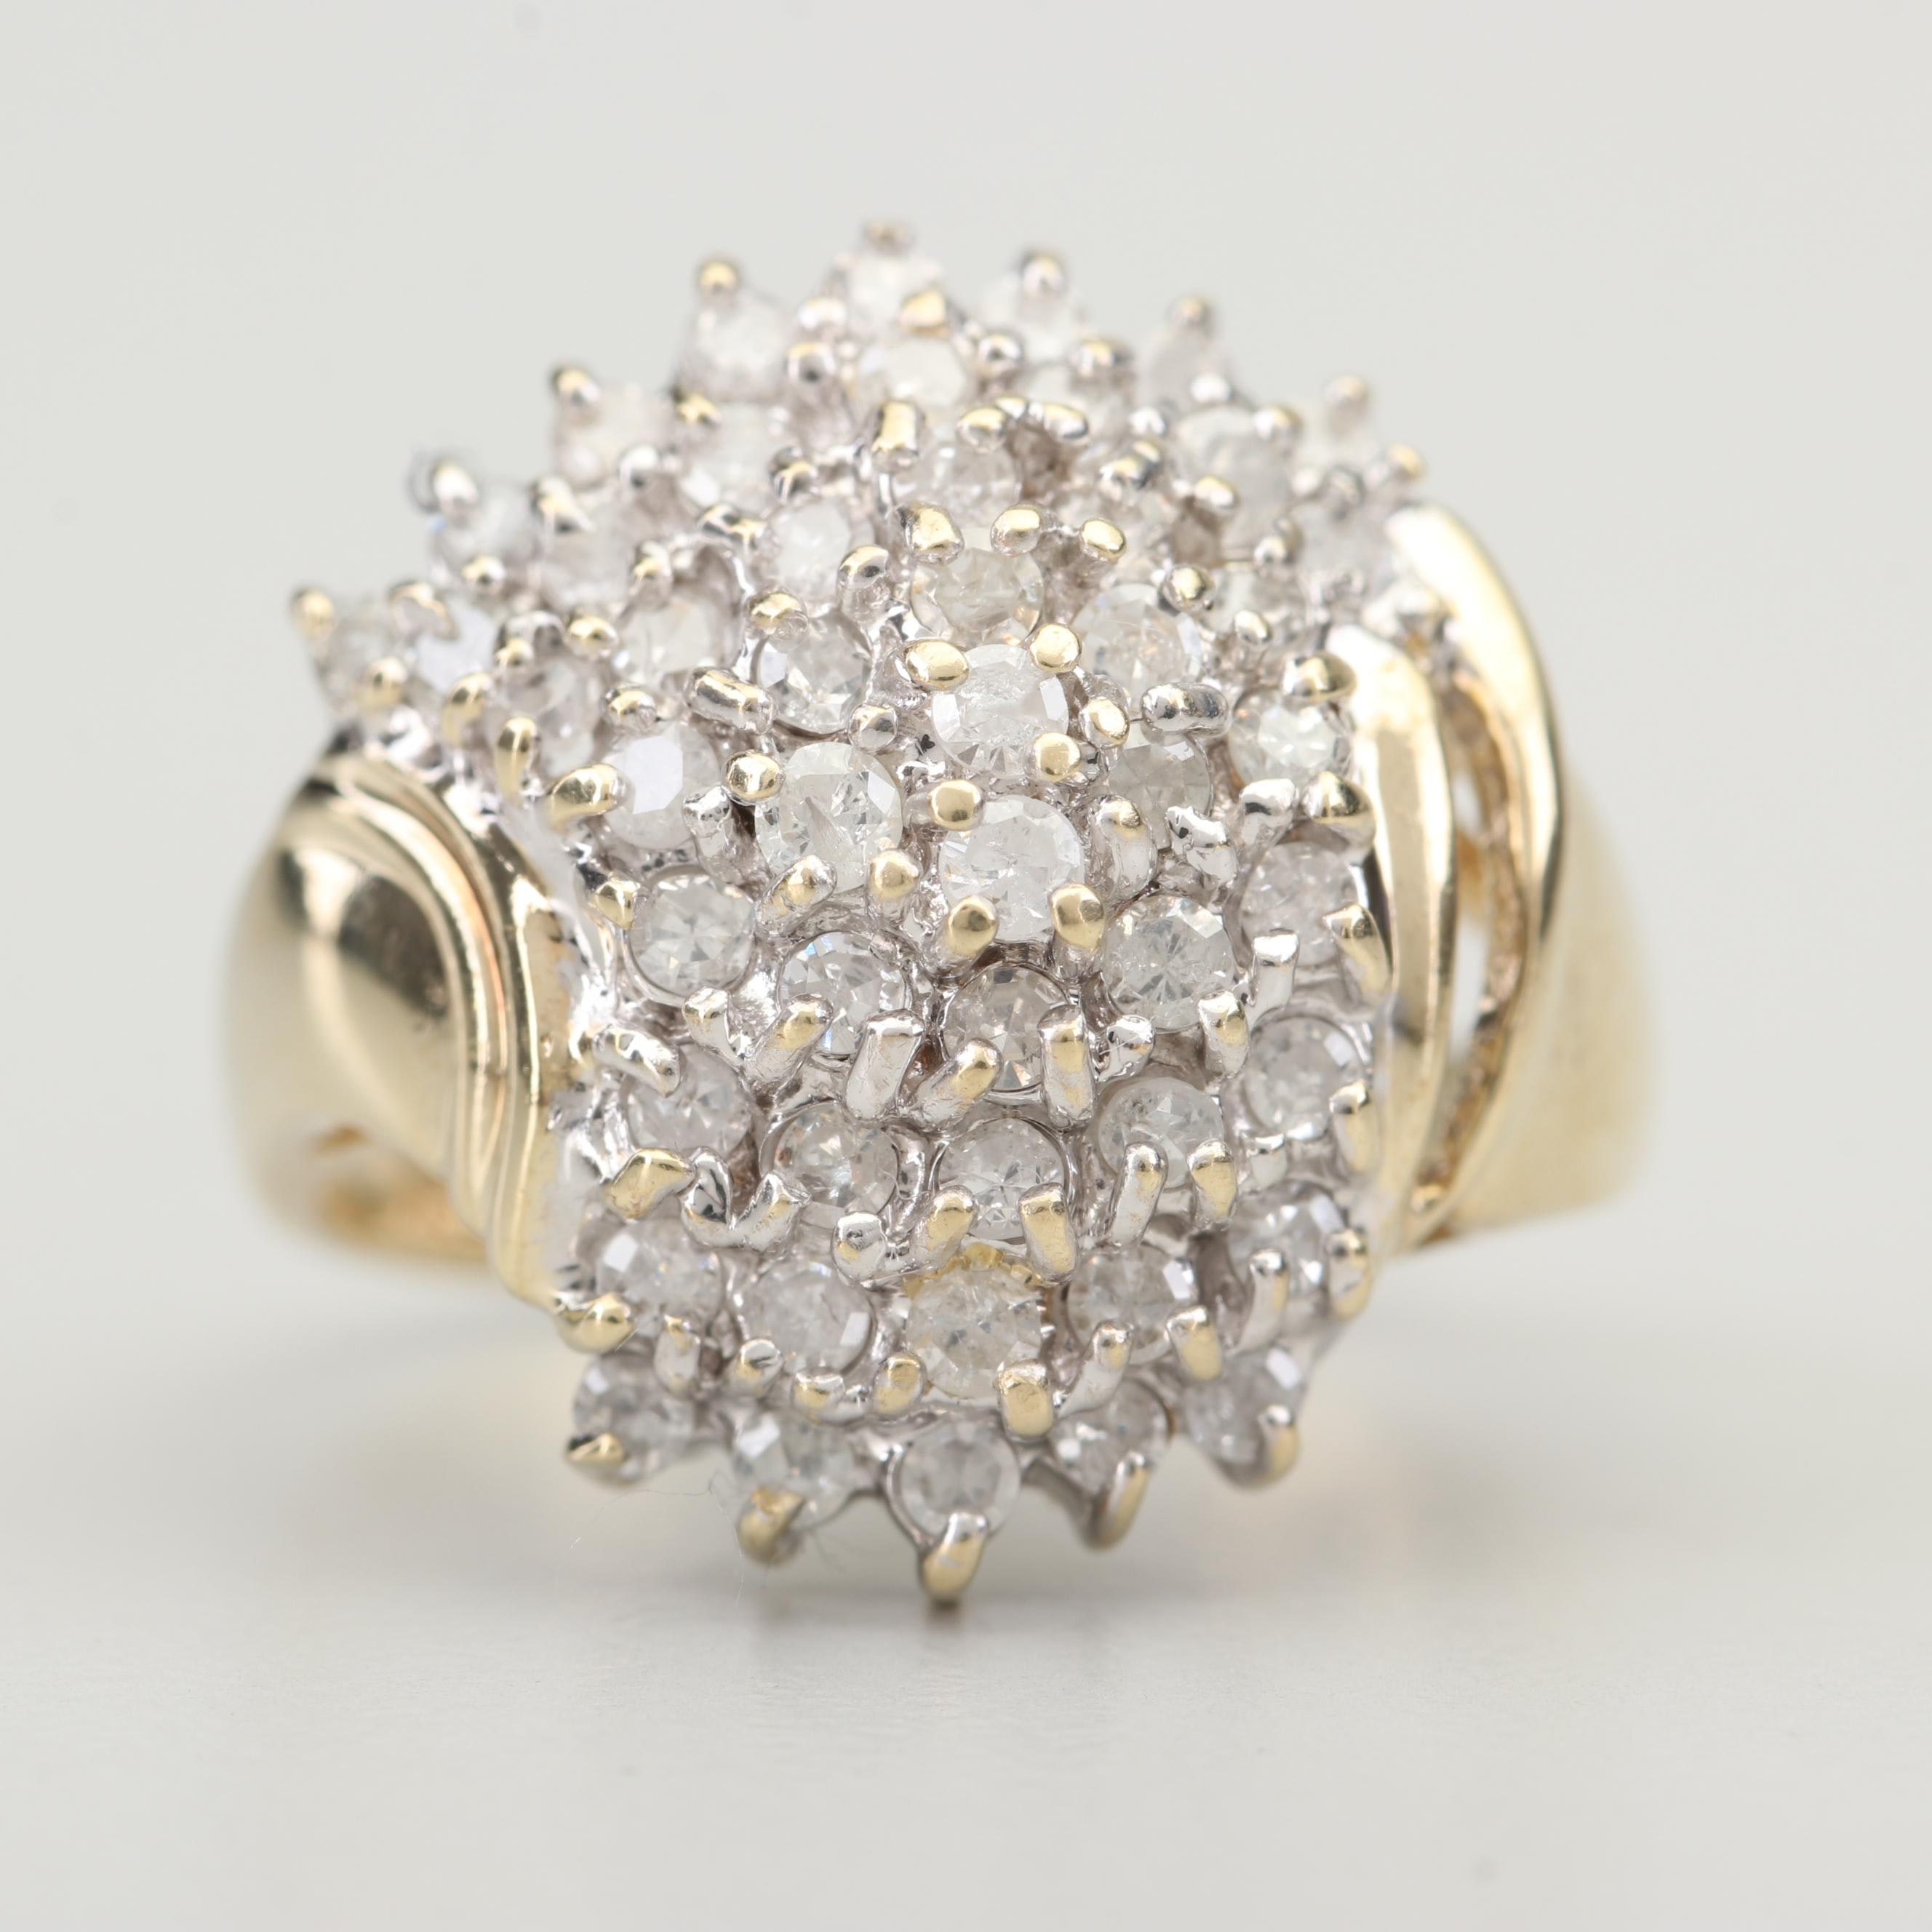 10K Yellow Gold 1.00 CTW Diamond Cluster Ring